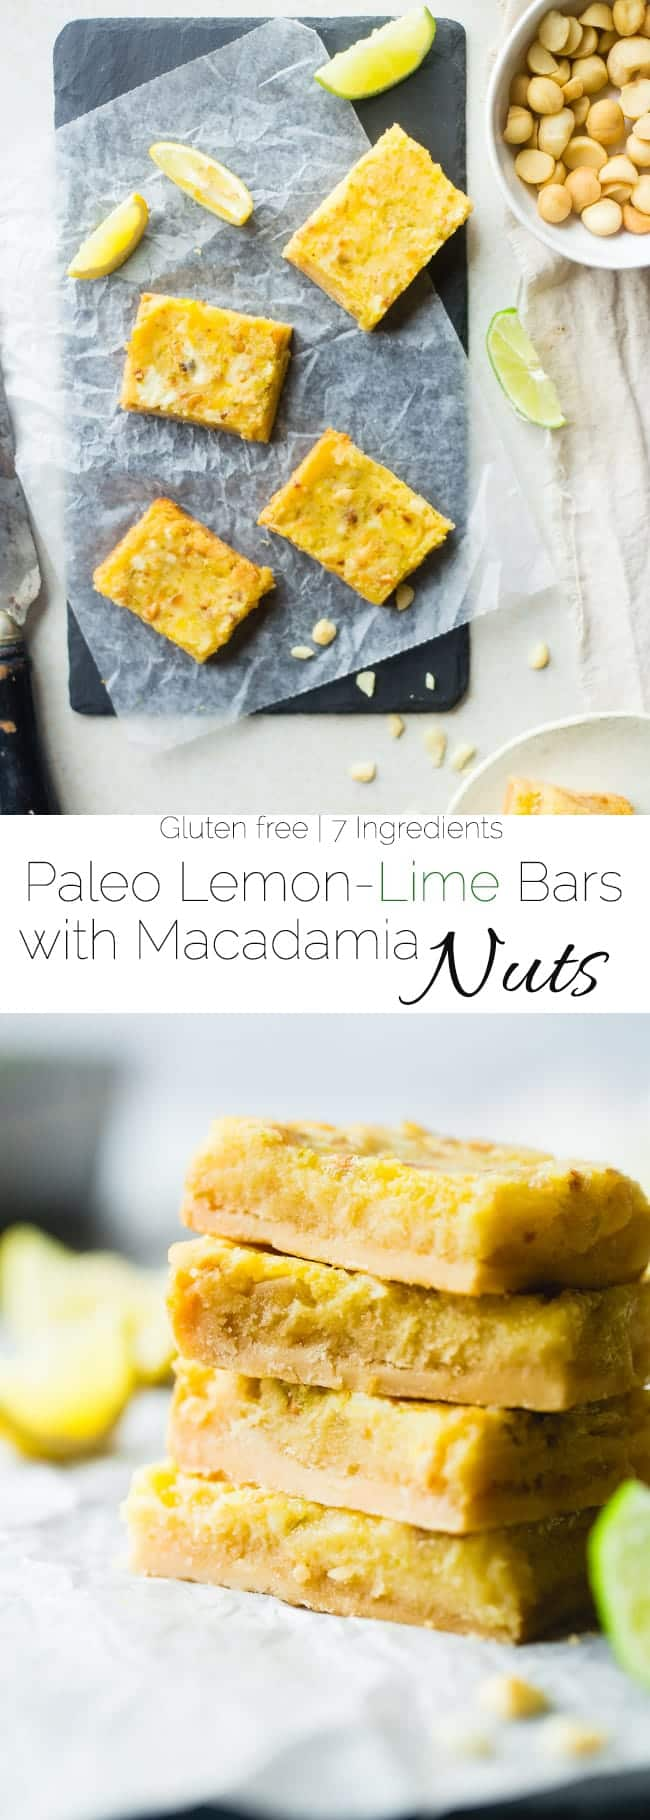 Tropical Paleo Lemon Bars - These paleo lemon bars use lime juice and macadamia nuts to give the classic dessert a tropical twist. They're a healthier, gluten and grain free dessert that's only 7 ingredients and so easy to make! | Foodfaithfitness.com | @FoodFaithFit